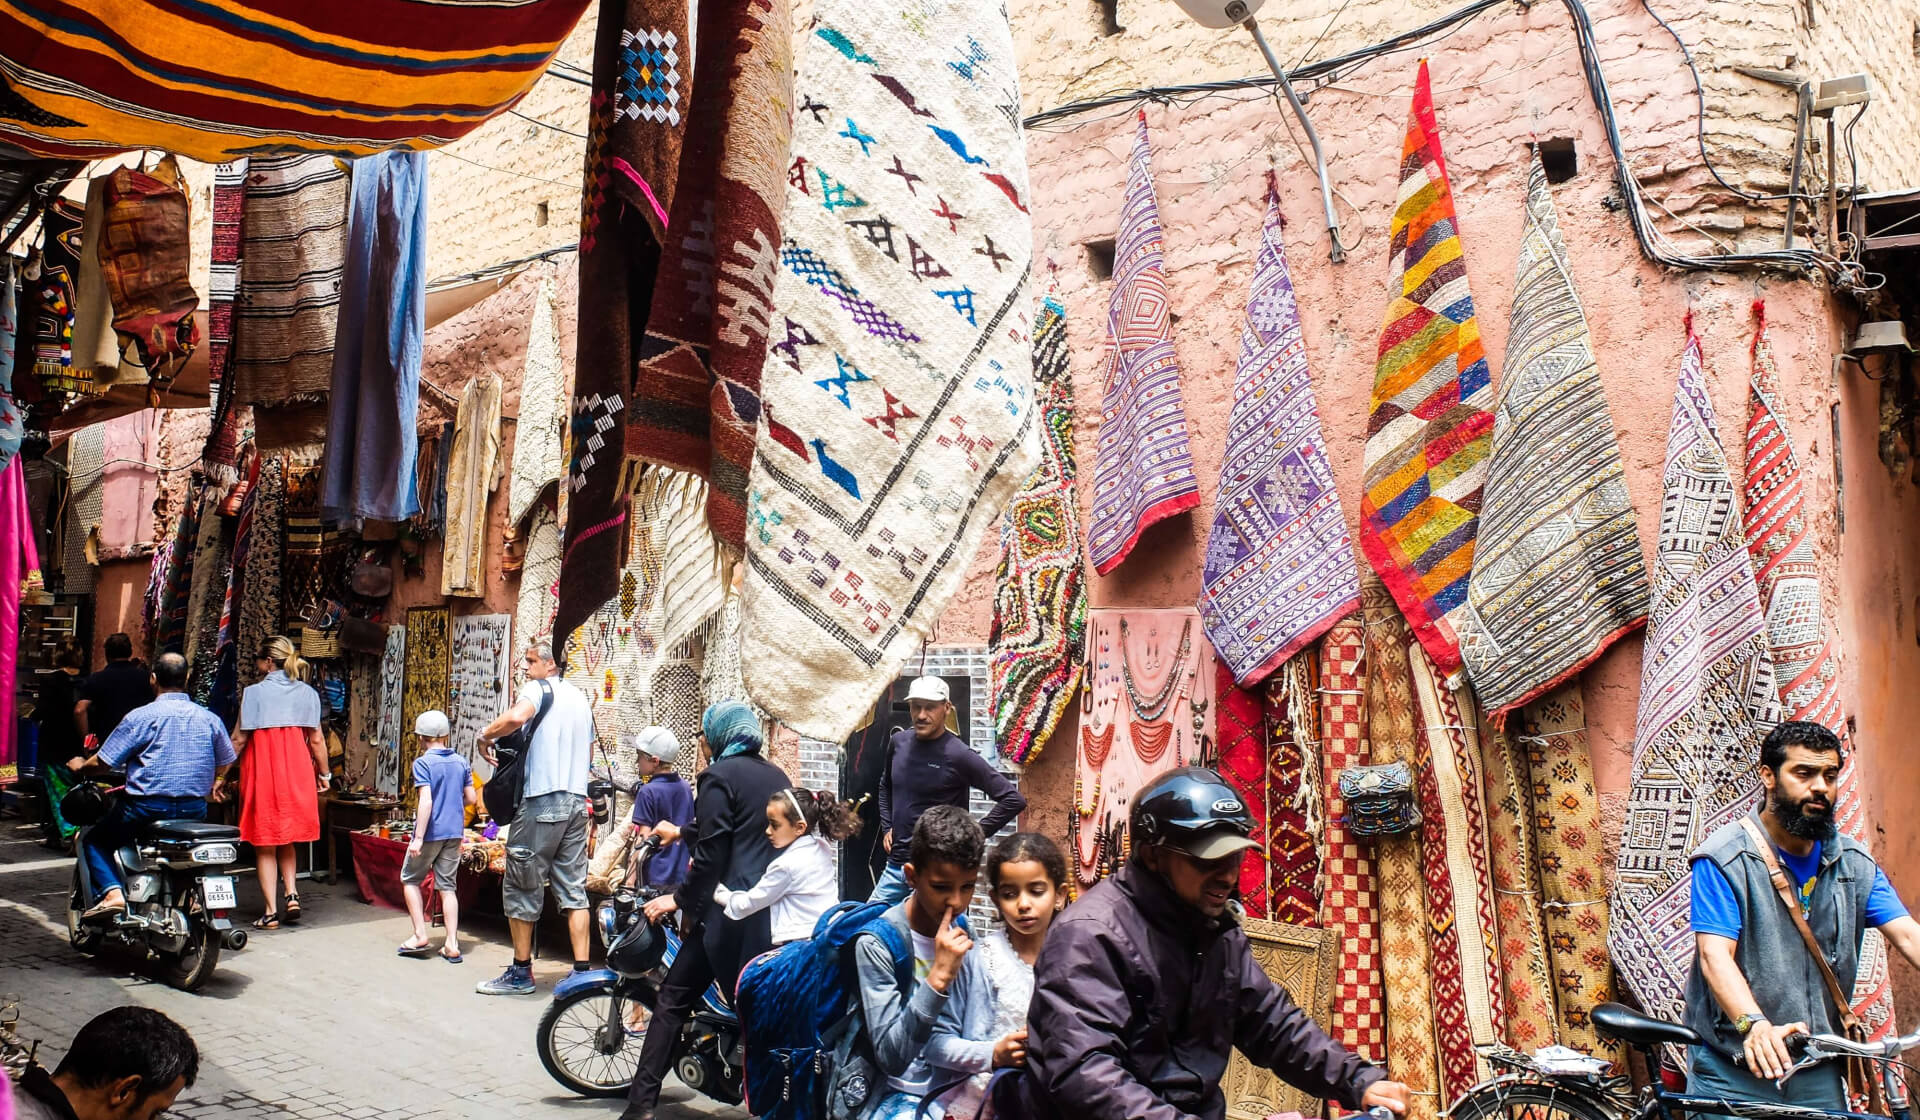 Souk in Marrakech, Morocco with colorful rugs on the walls and jewelry for sale and lots of people walking and a motorbike driving through a narrow street